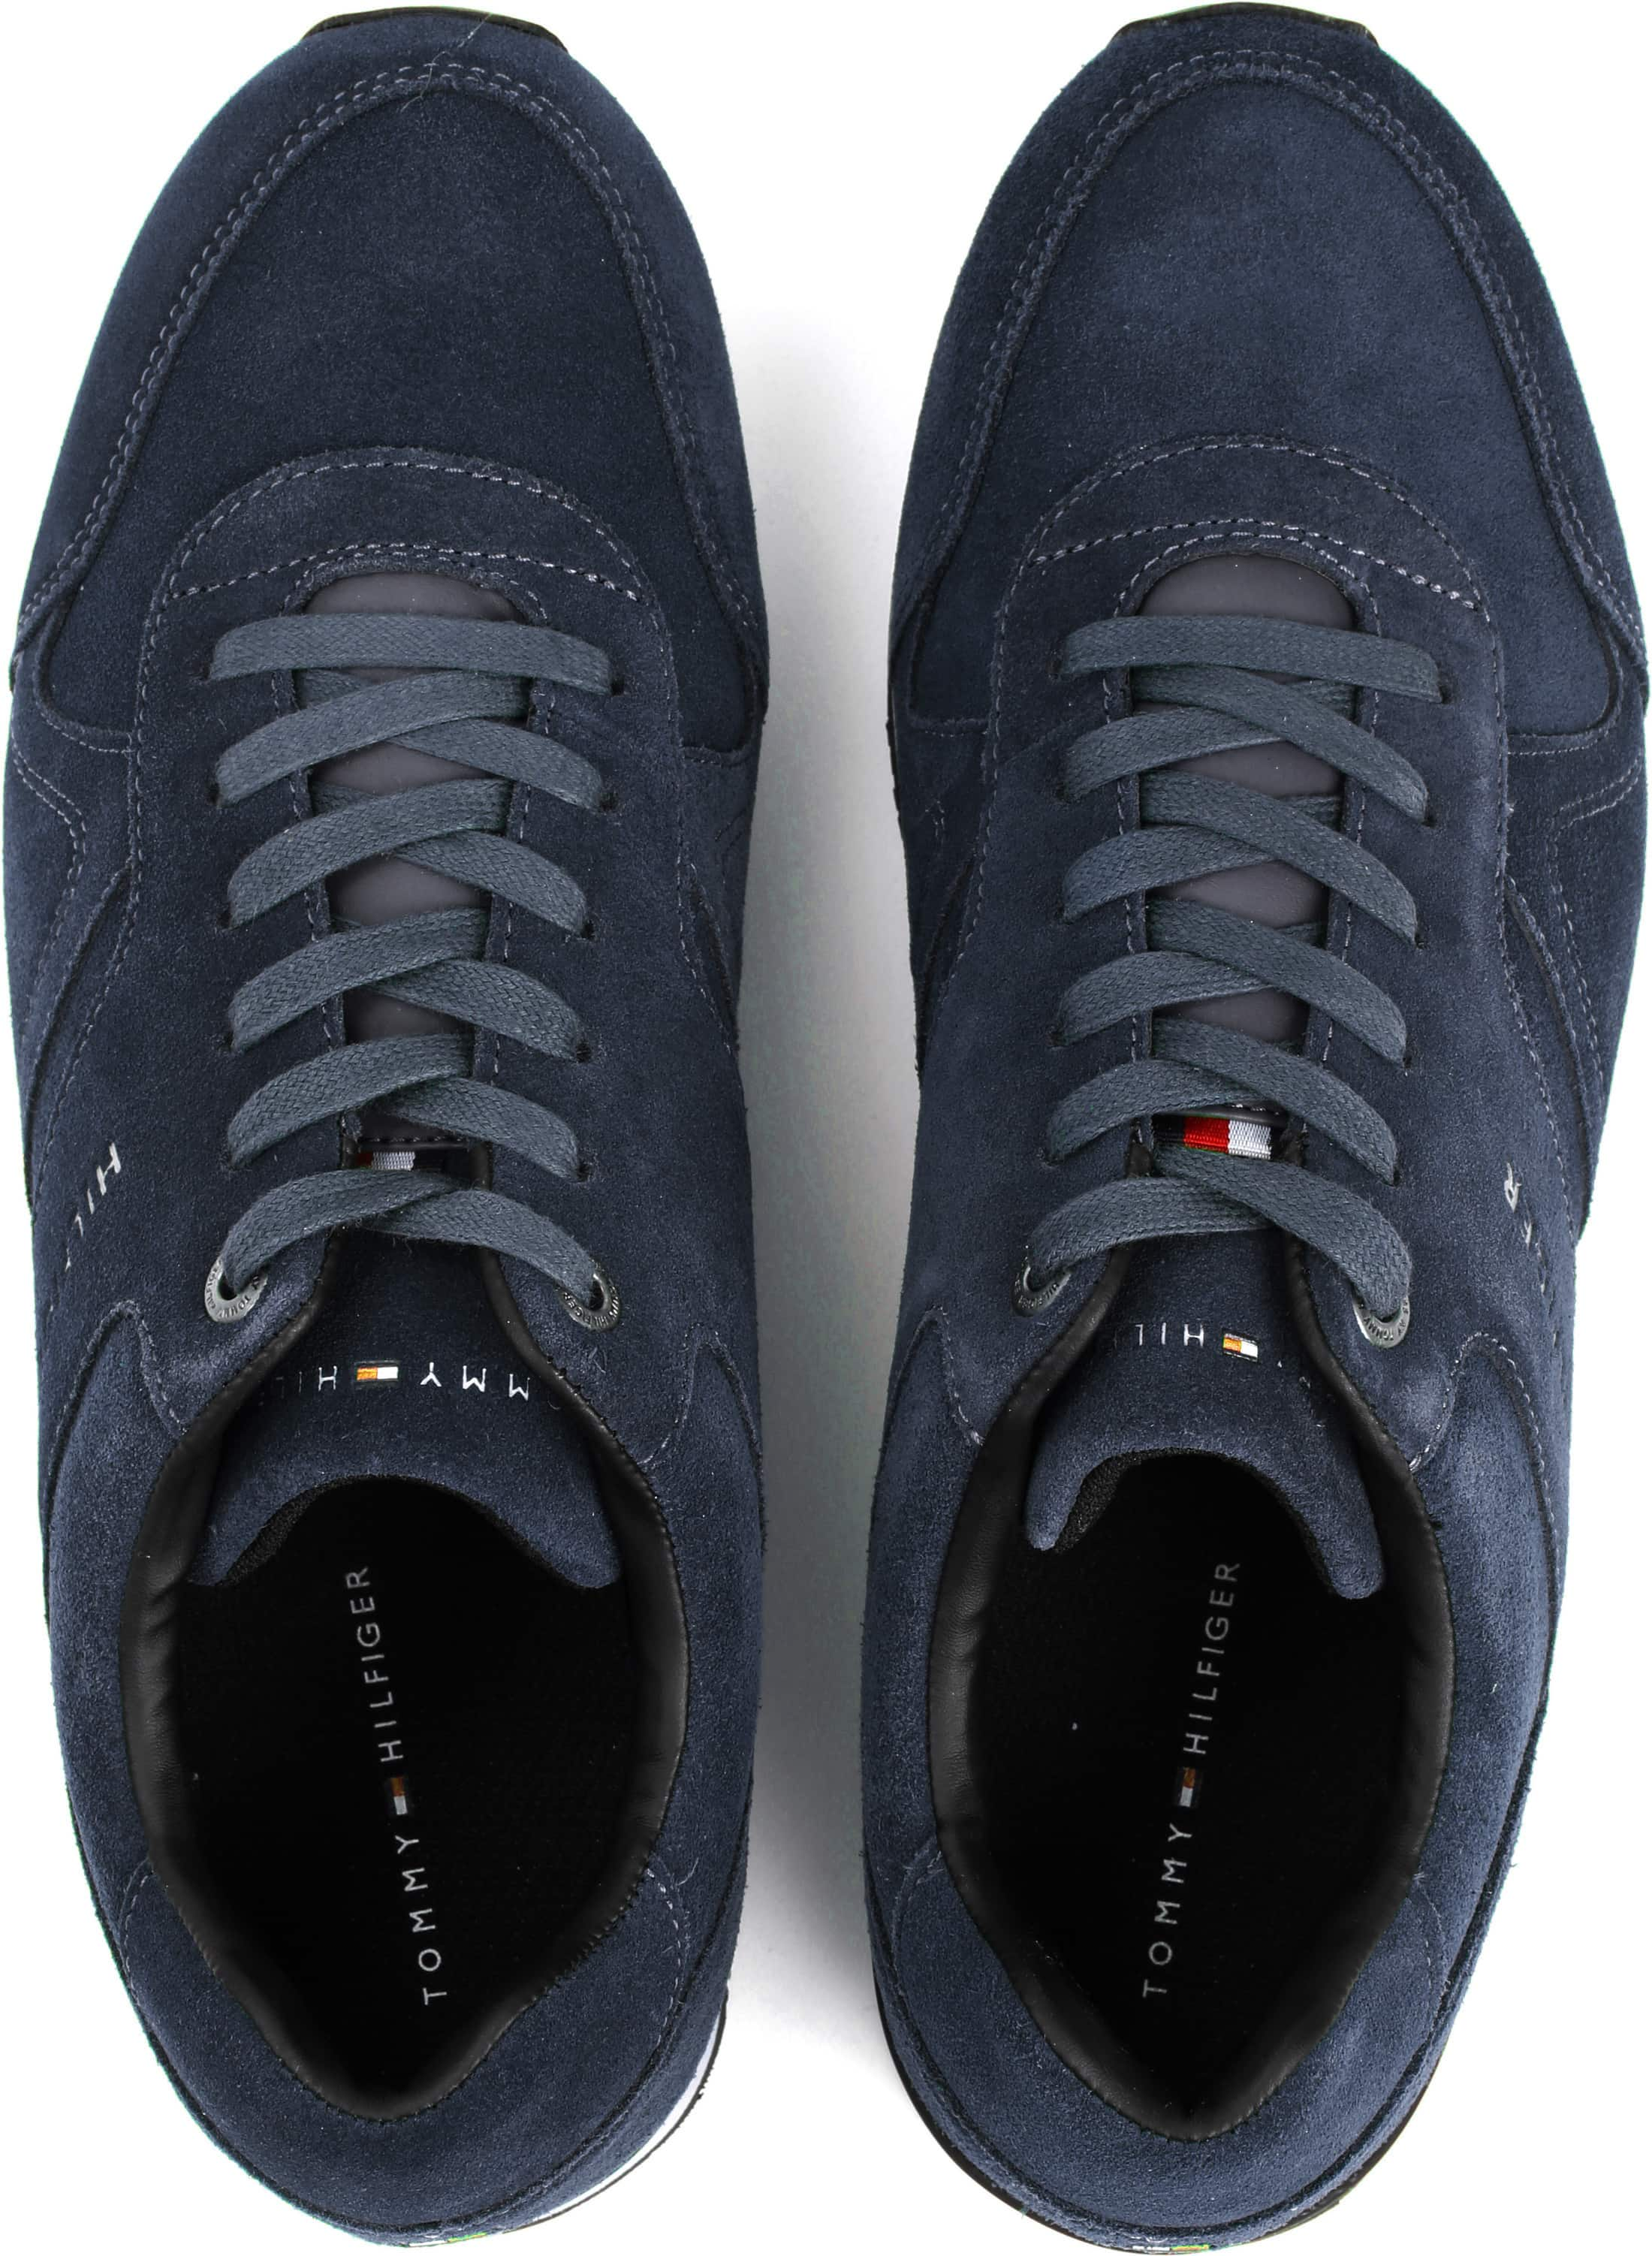 Tommy Hilfiger Sneaker Navy Night foto 2